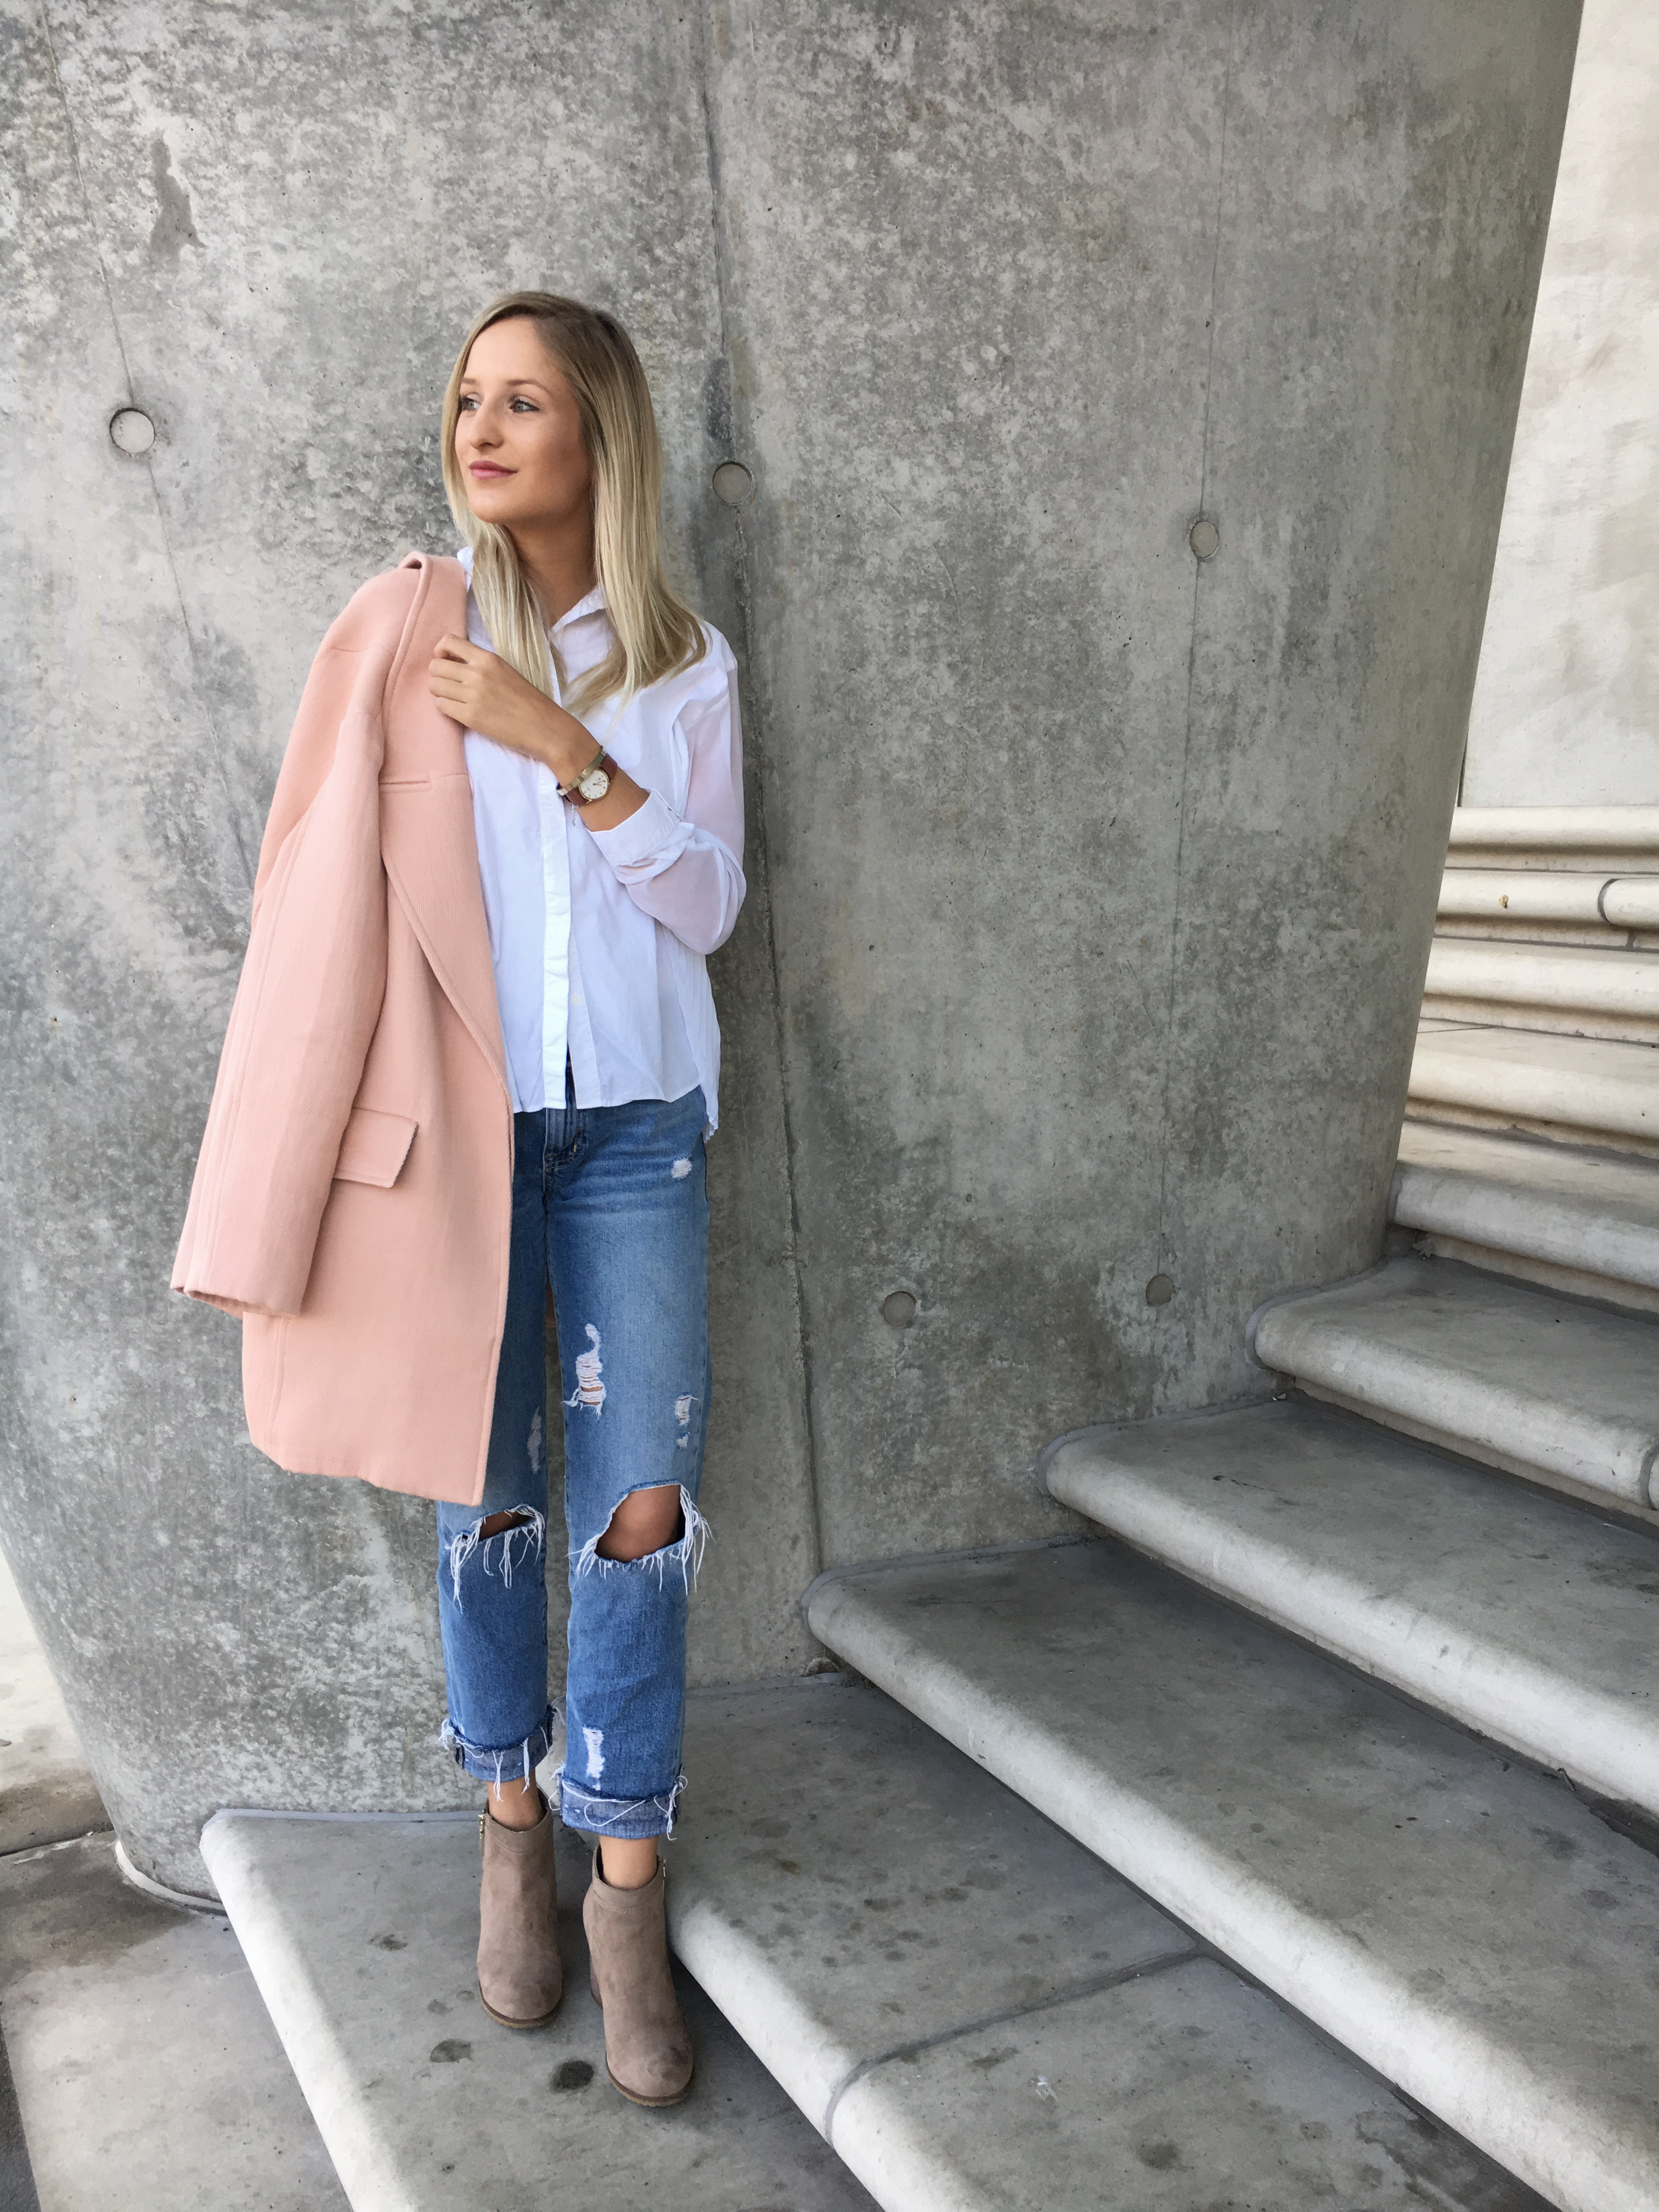 louisatheresa outfit mantel rosa destroyed jeans